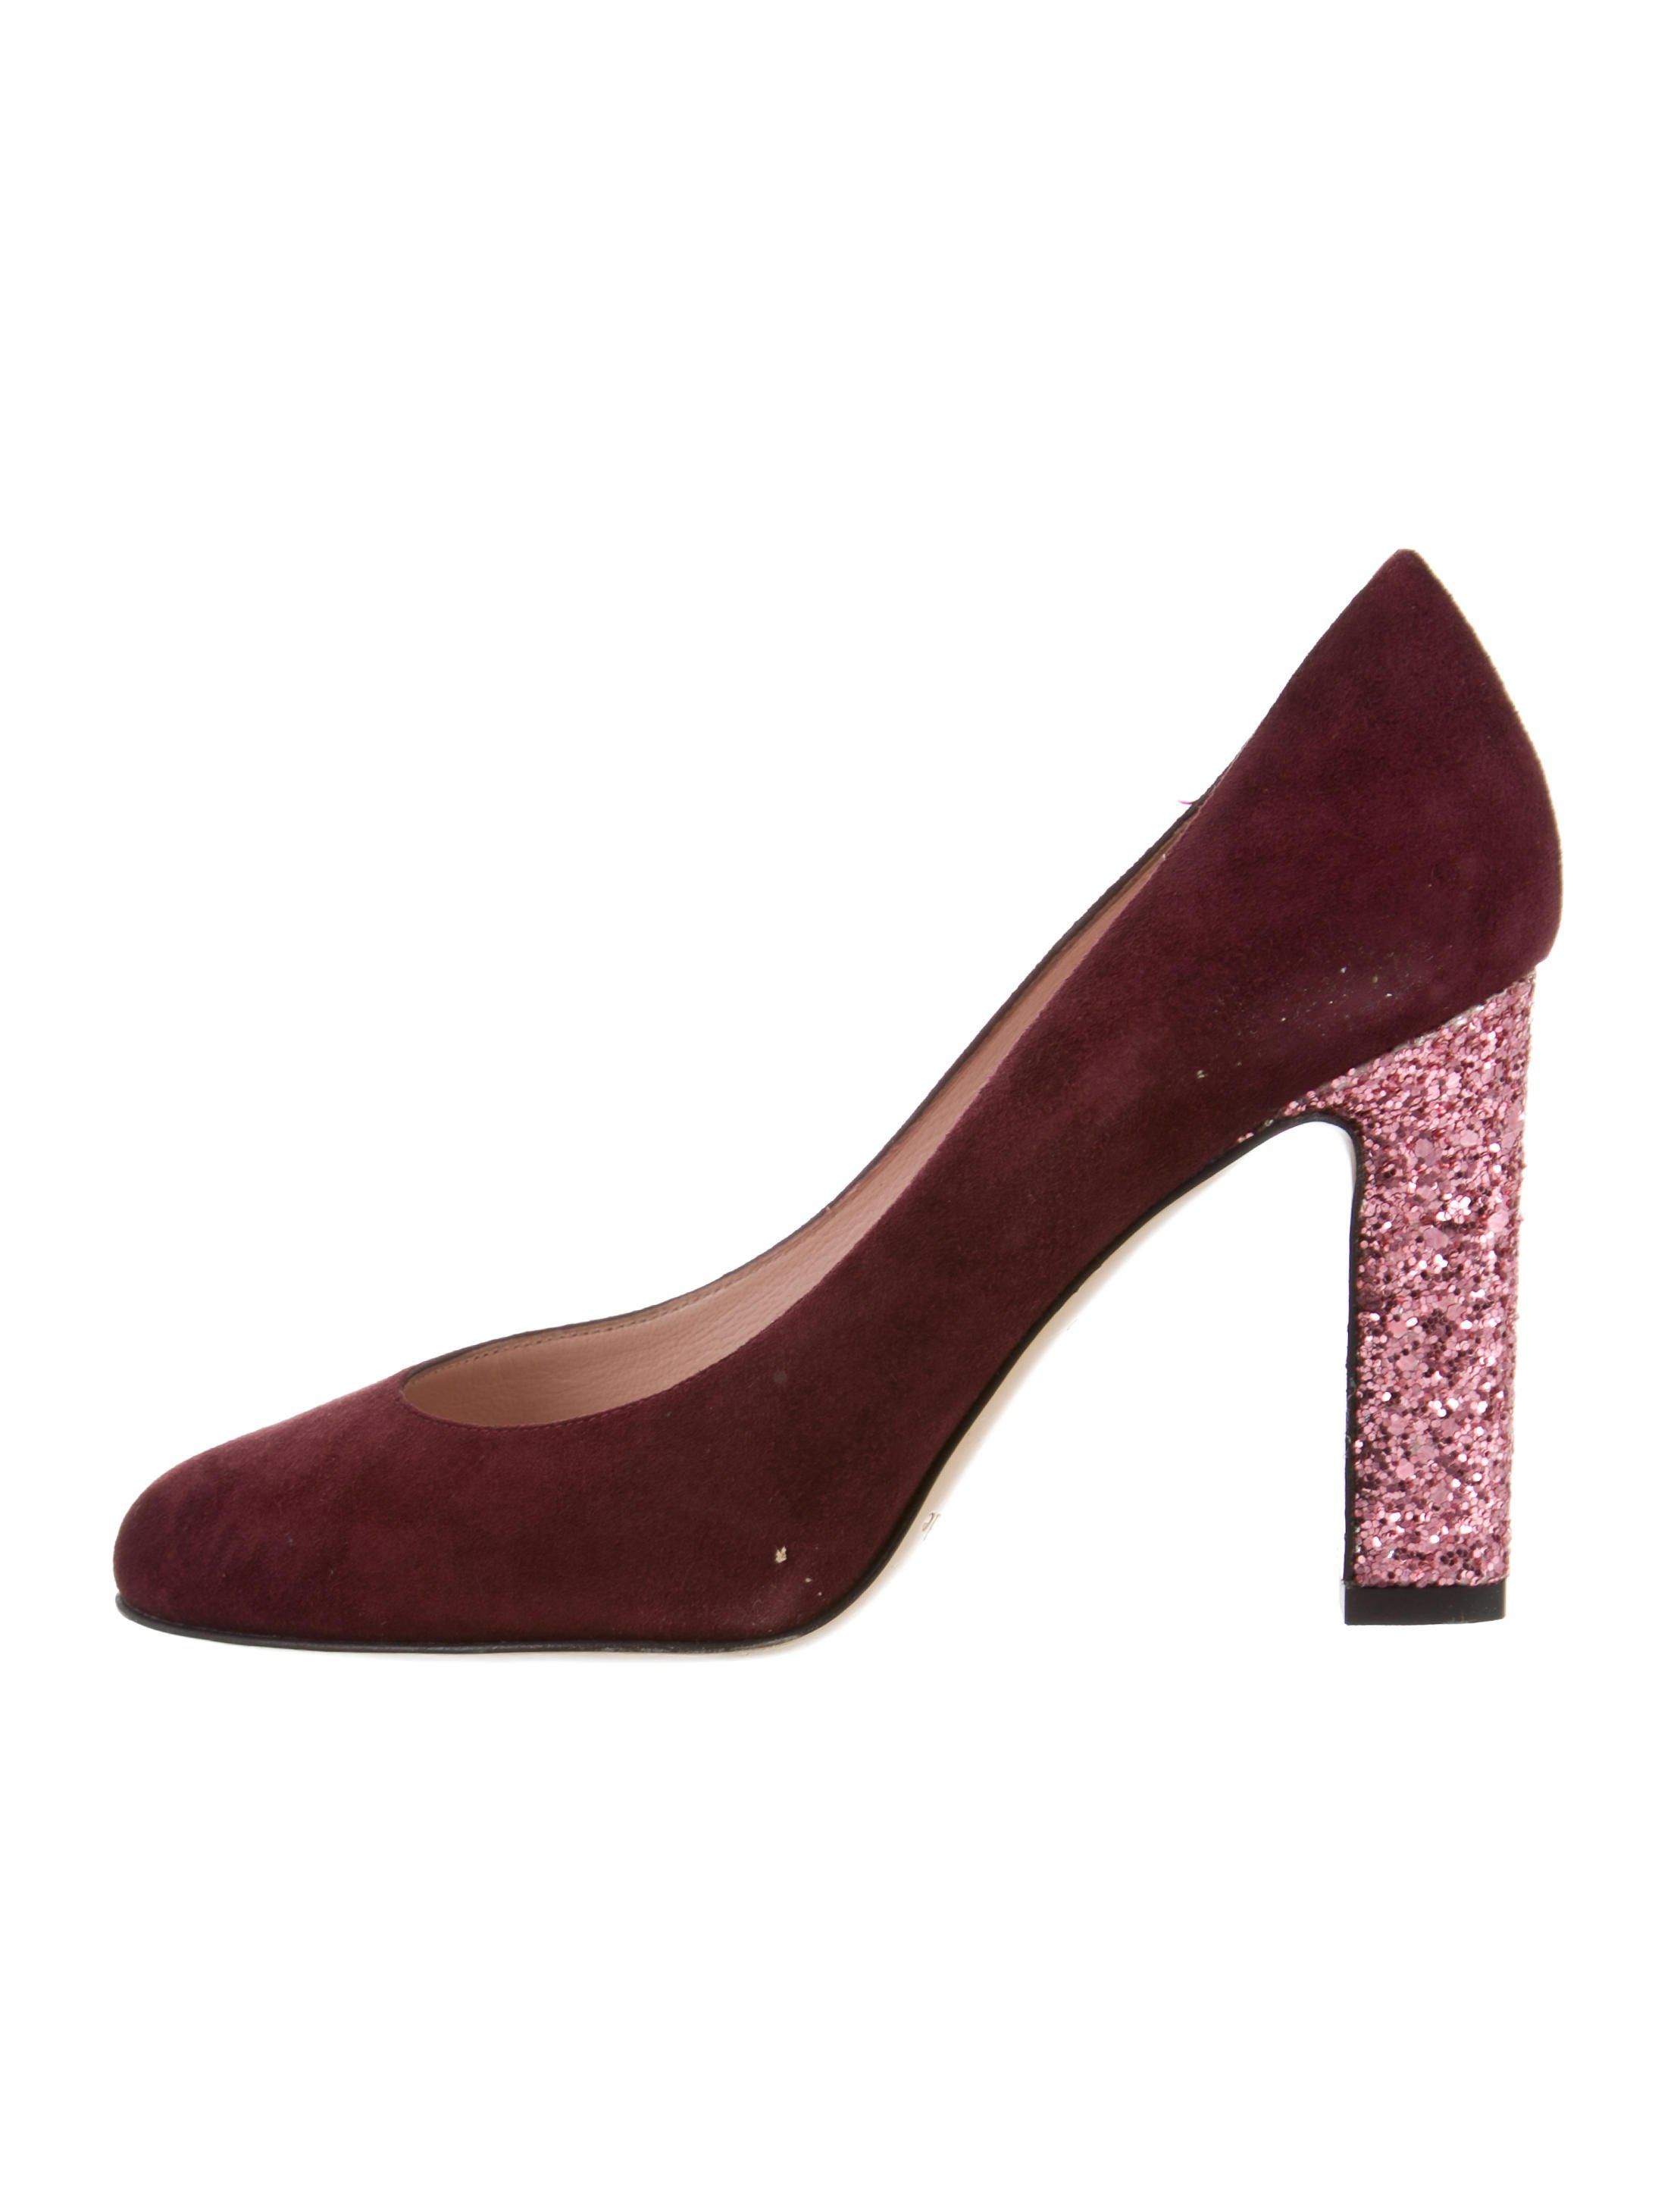 4871905039b Lyst - Kate Spade Rounded-toe Suede Pumps in Red